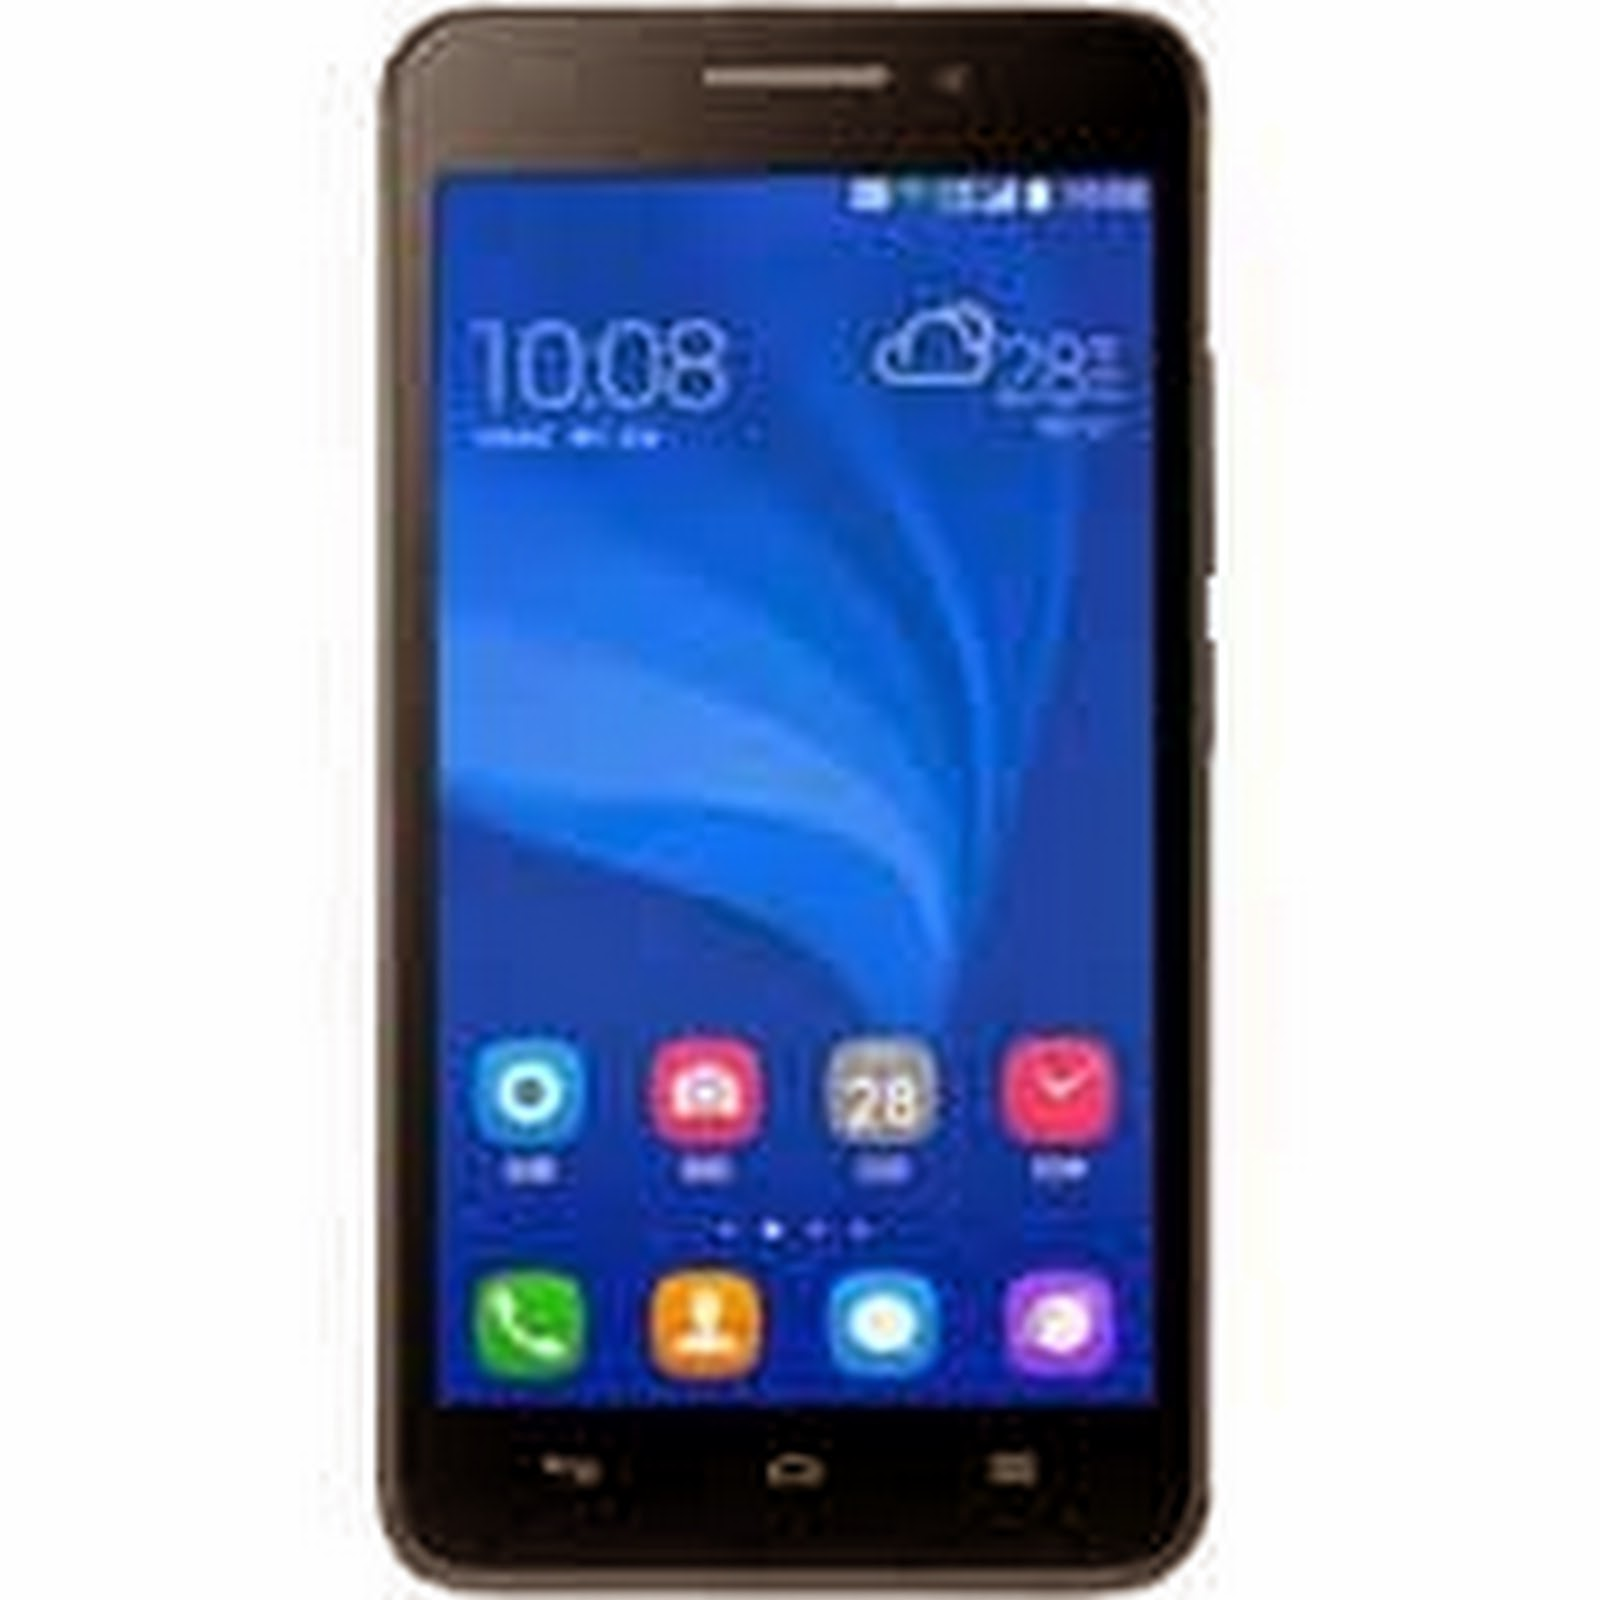 Huawei Honor 4 Play price in Pakistan phone full specification